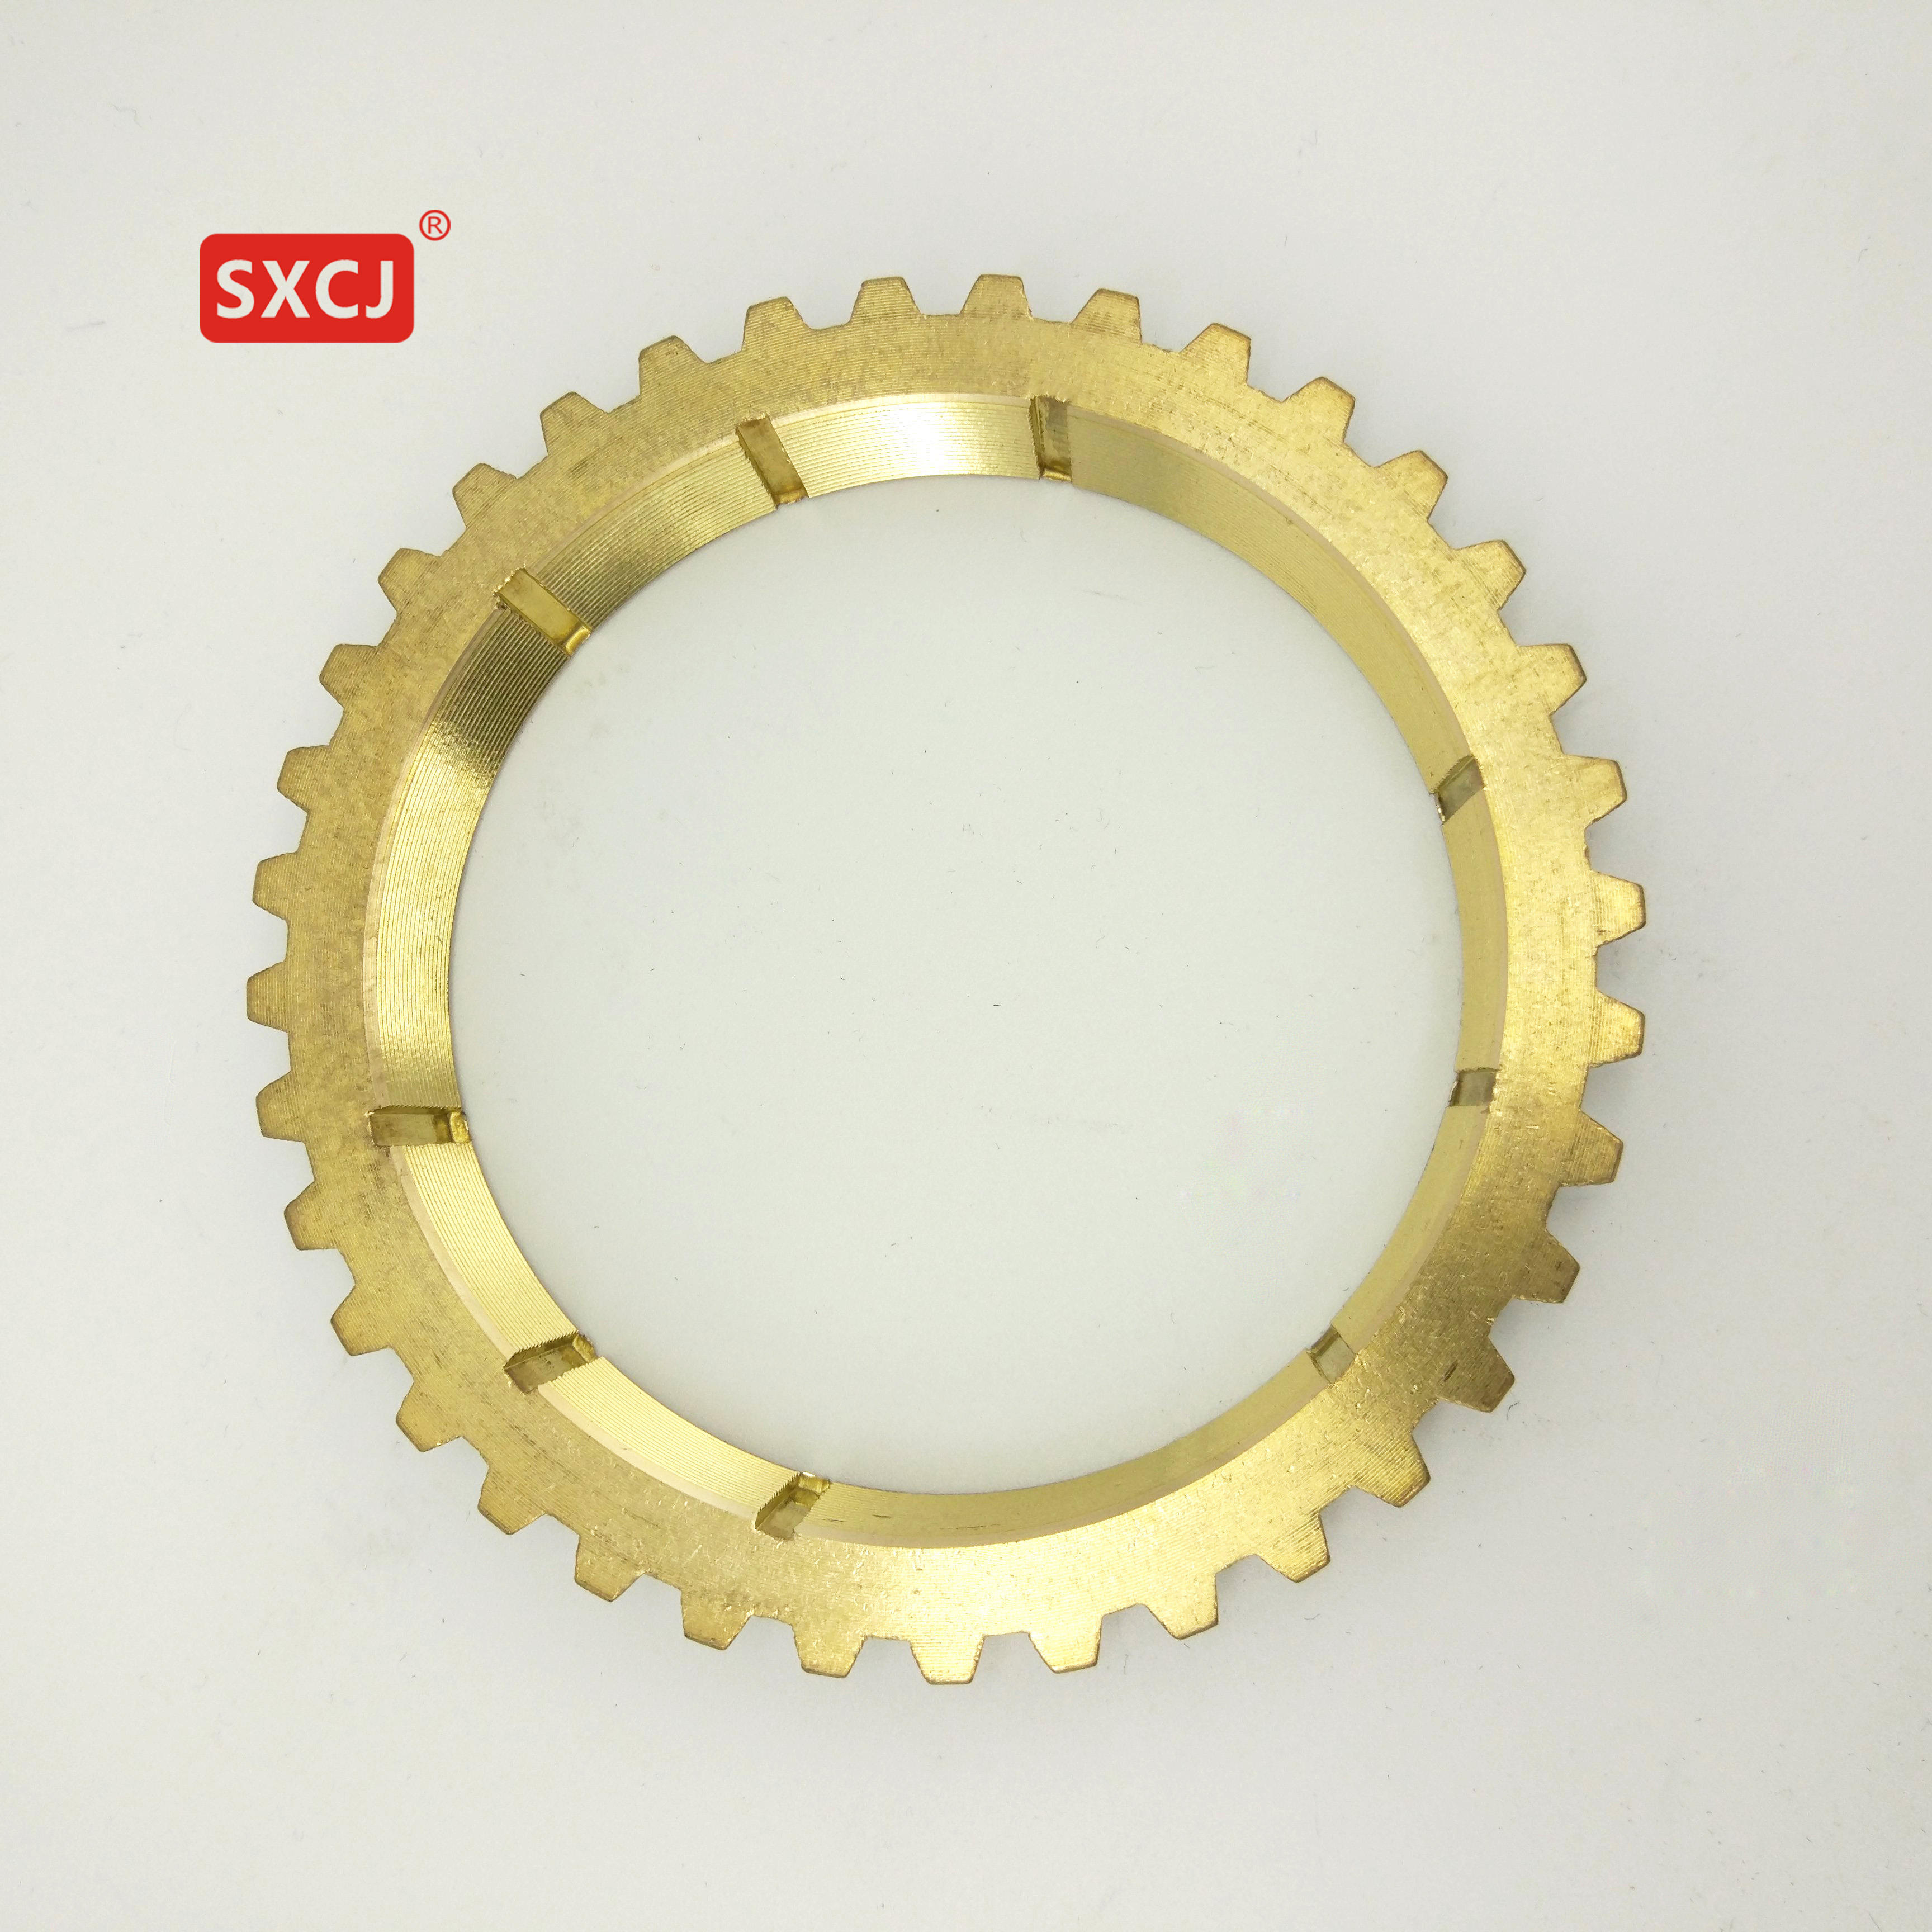 Auto parts transmission parts Synchronizer brass gear ring 3EB-14-21160